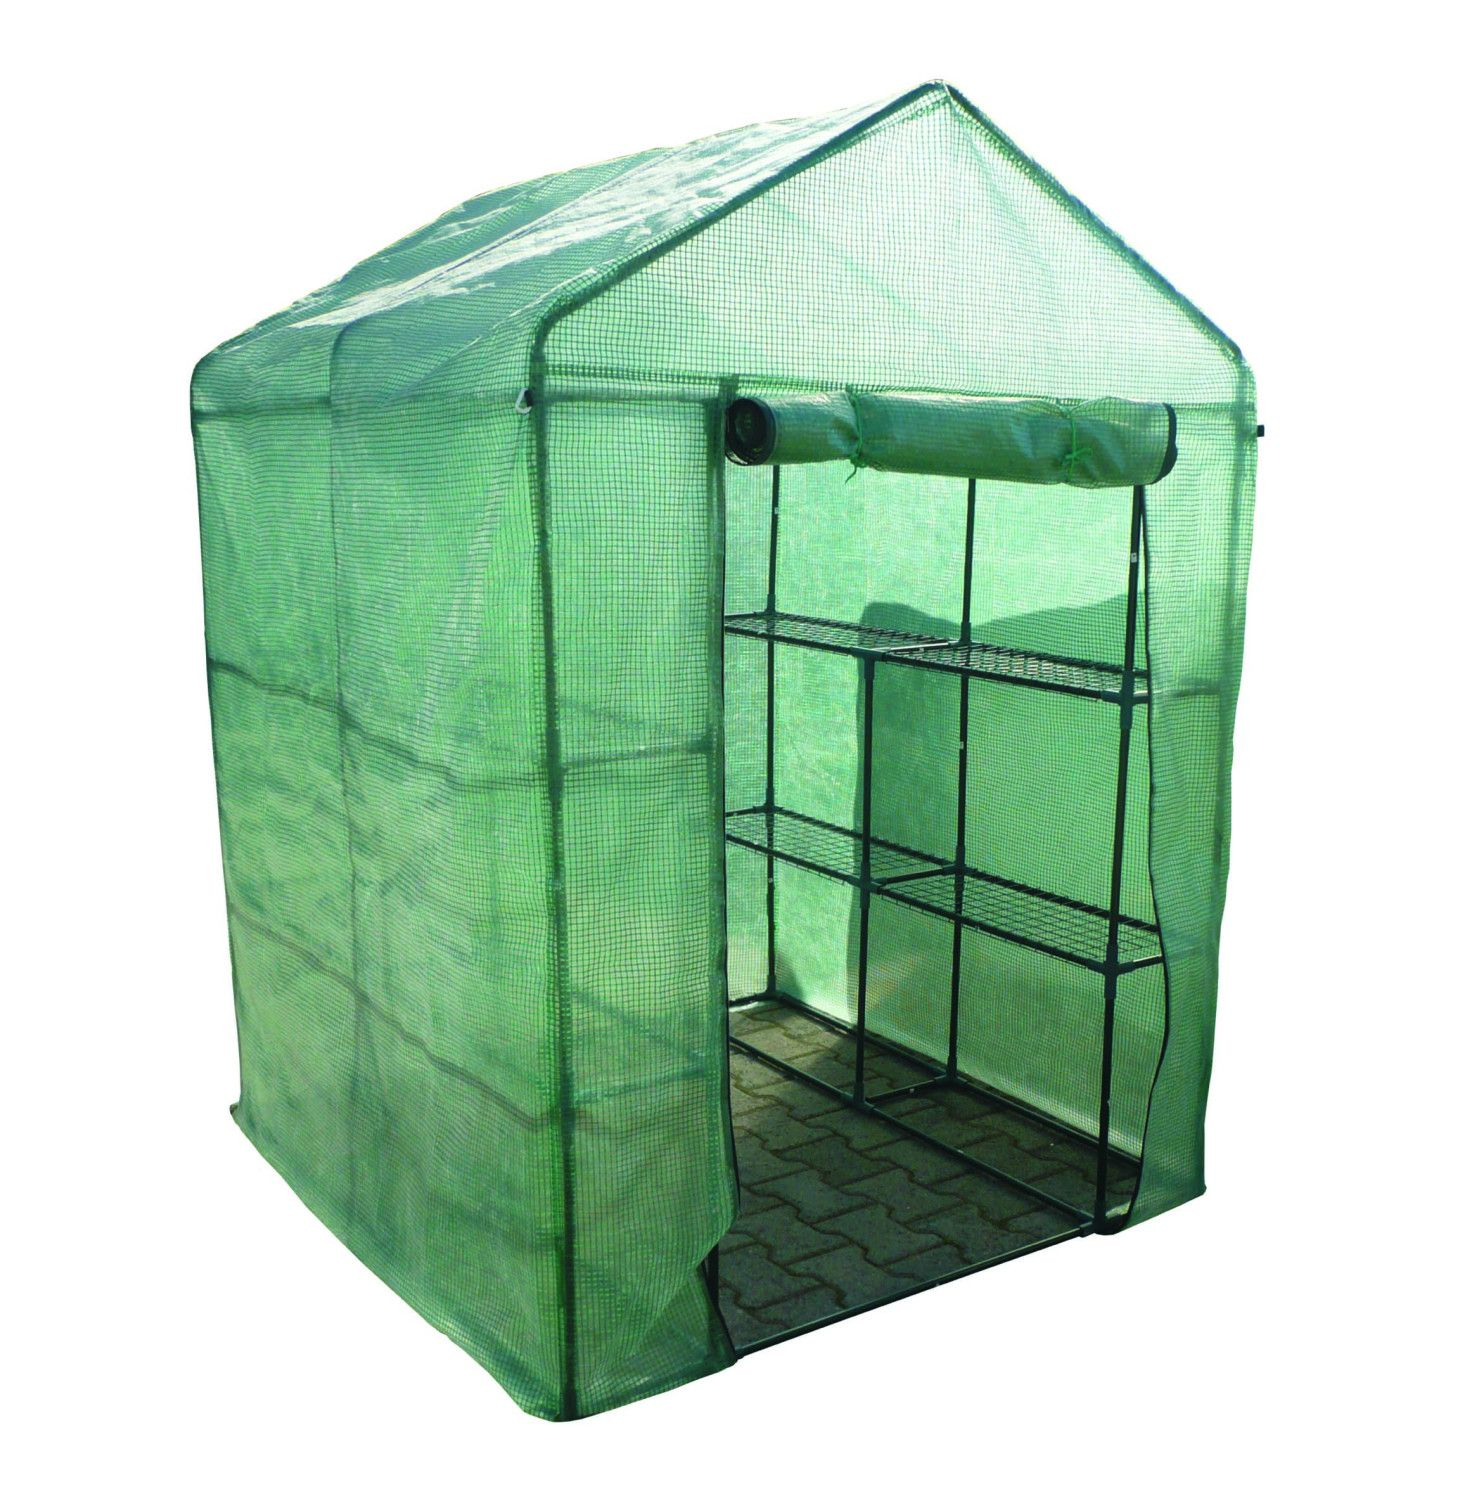 DUROPLASTIC Walk-in Grow Tent Green - Lowest Prices u0026 Specials Online | Makro  sc 1 st  Pinterest & DUROPLASTIC Walk-in Grow Tent Green - Lowest Prices u0026 Specials ...